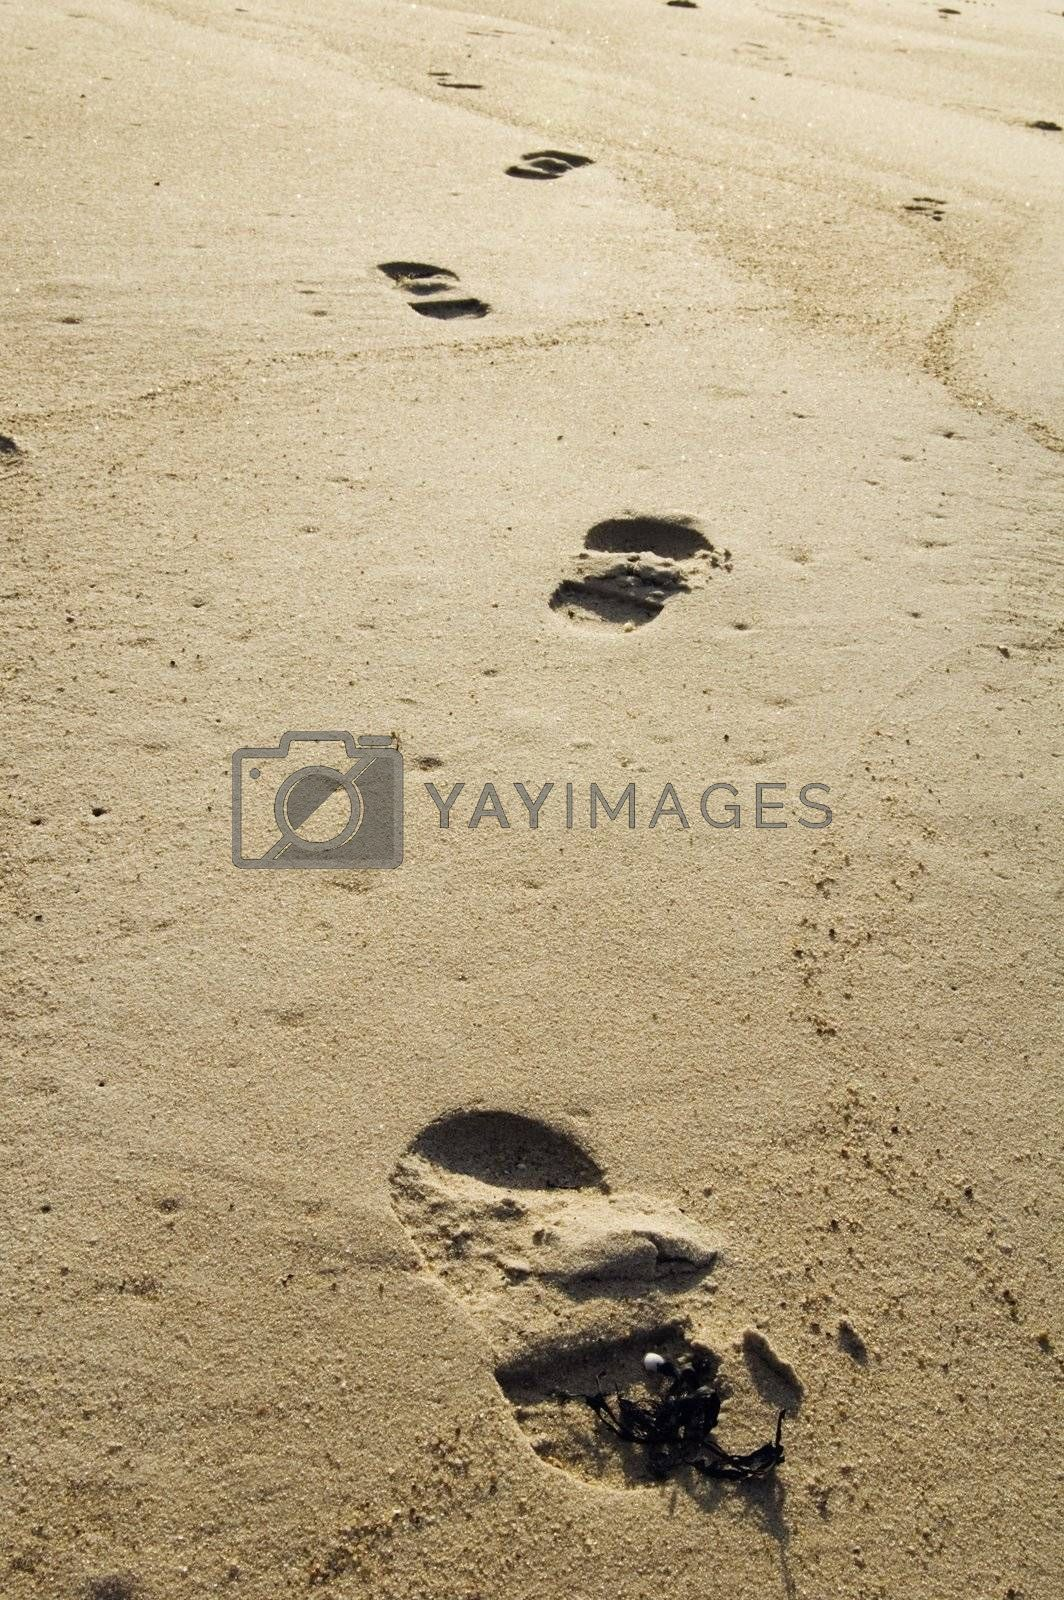 Trace of the person on sand